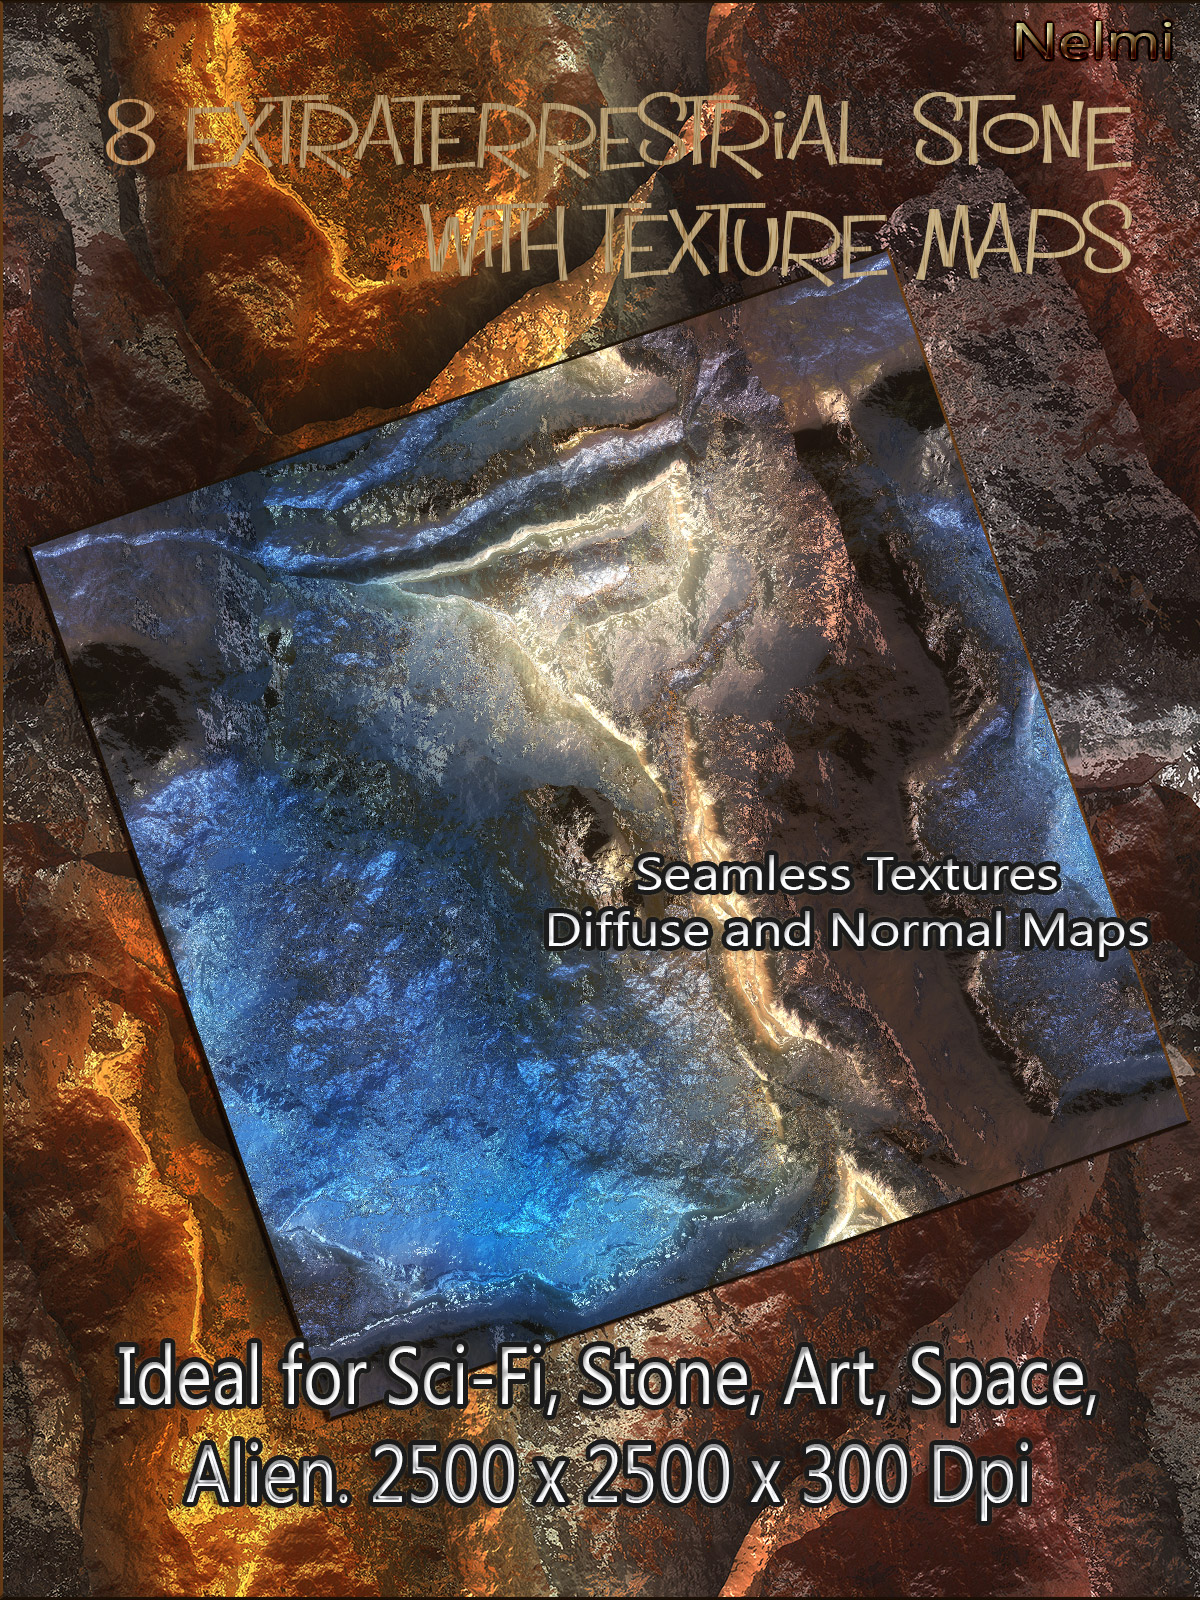 8 Seamless Extraterrestrial Stone Textures with Texture Maps: Diffuse and Normal